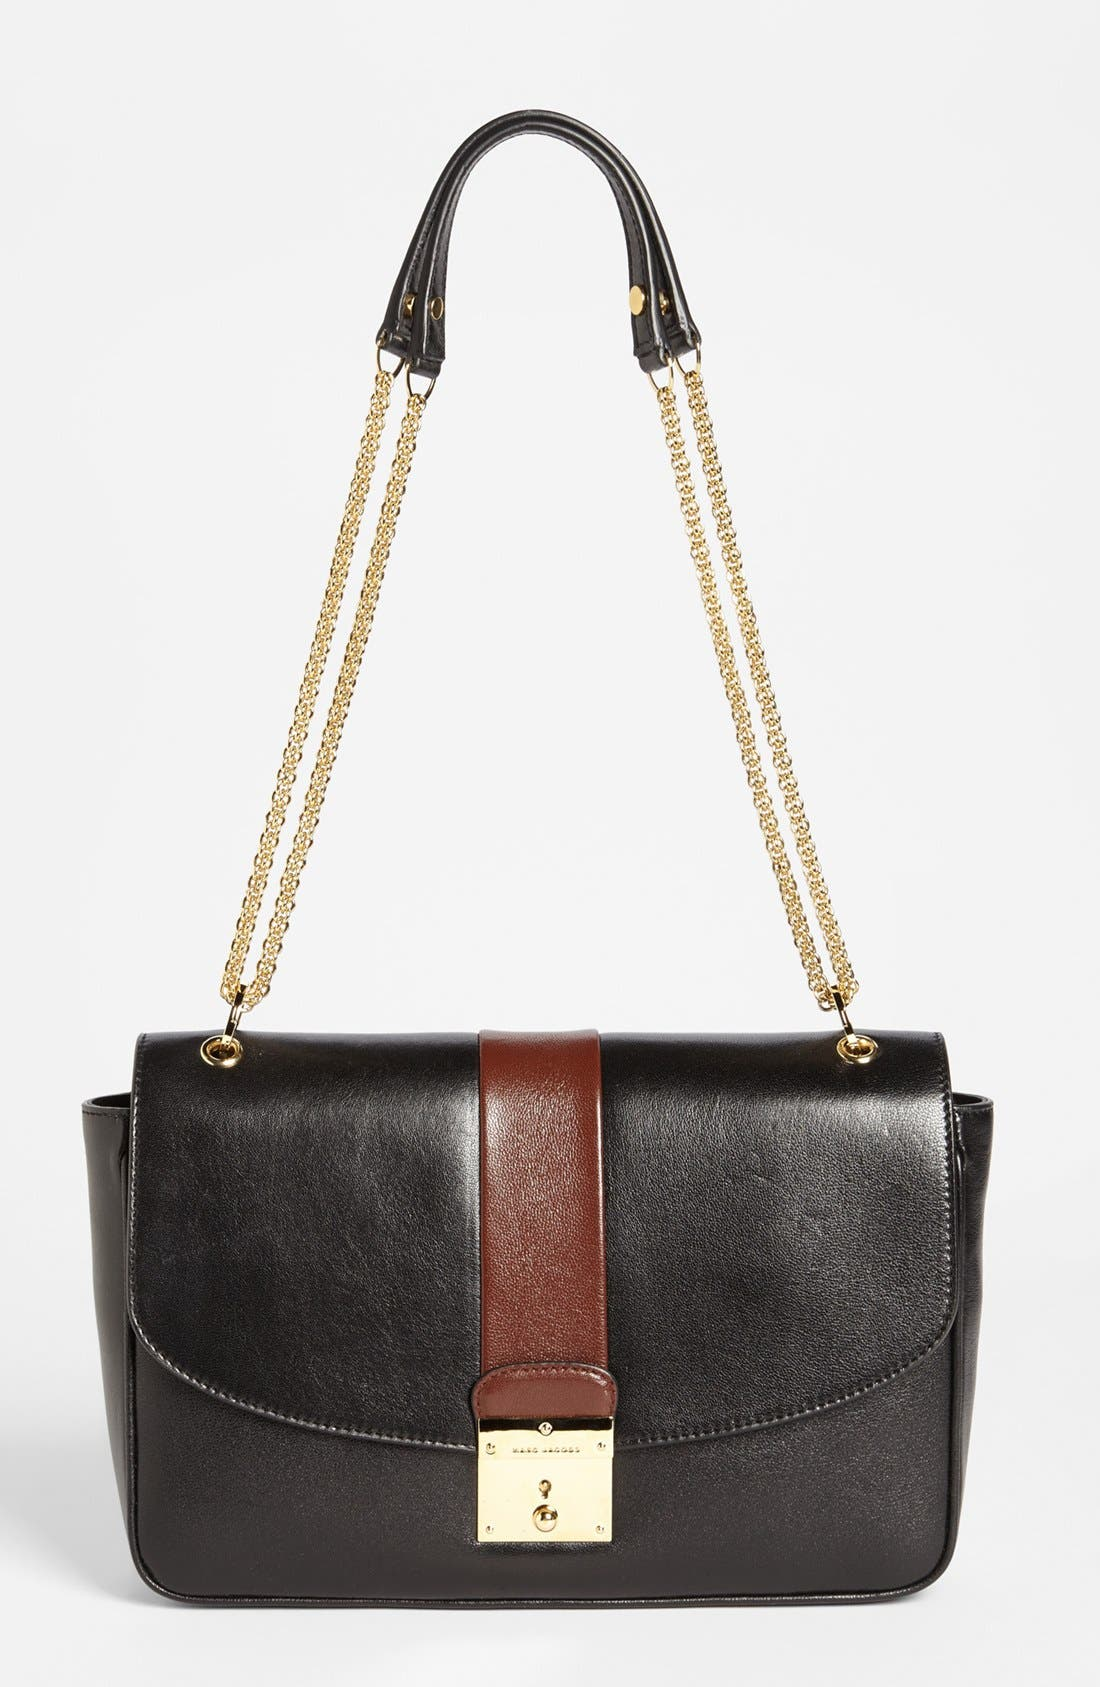 Alternate Image 1 Selected - MARC JACOBS 'Checkers - Polly' Leather Shoulder Bag